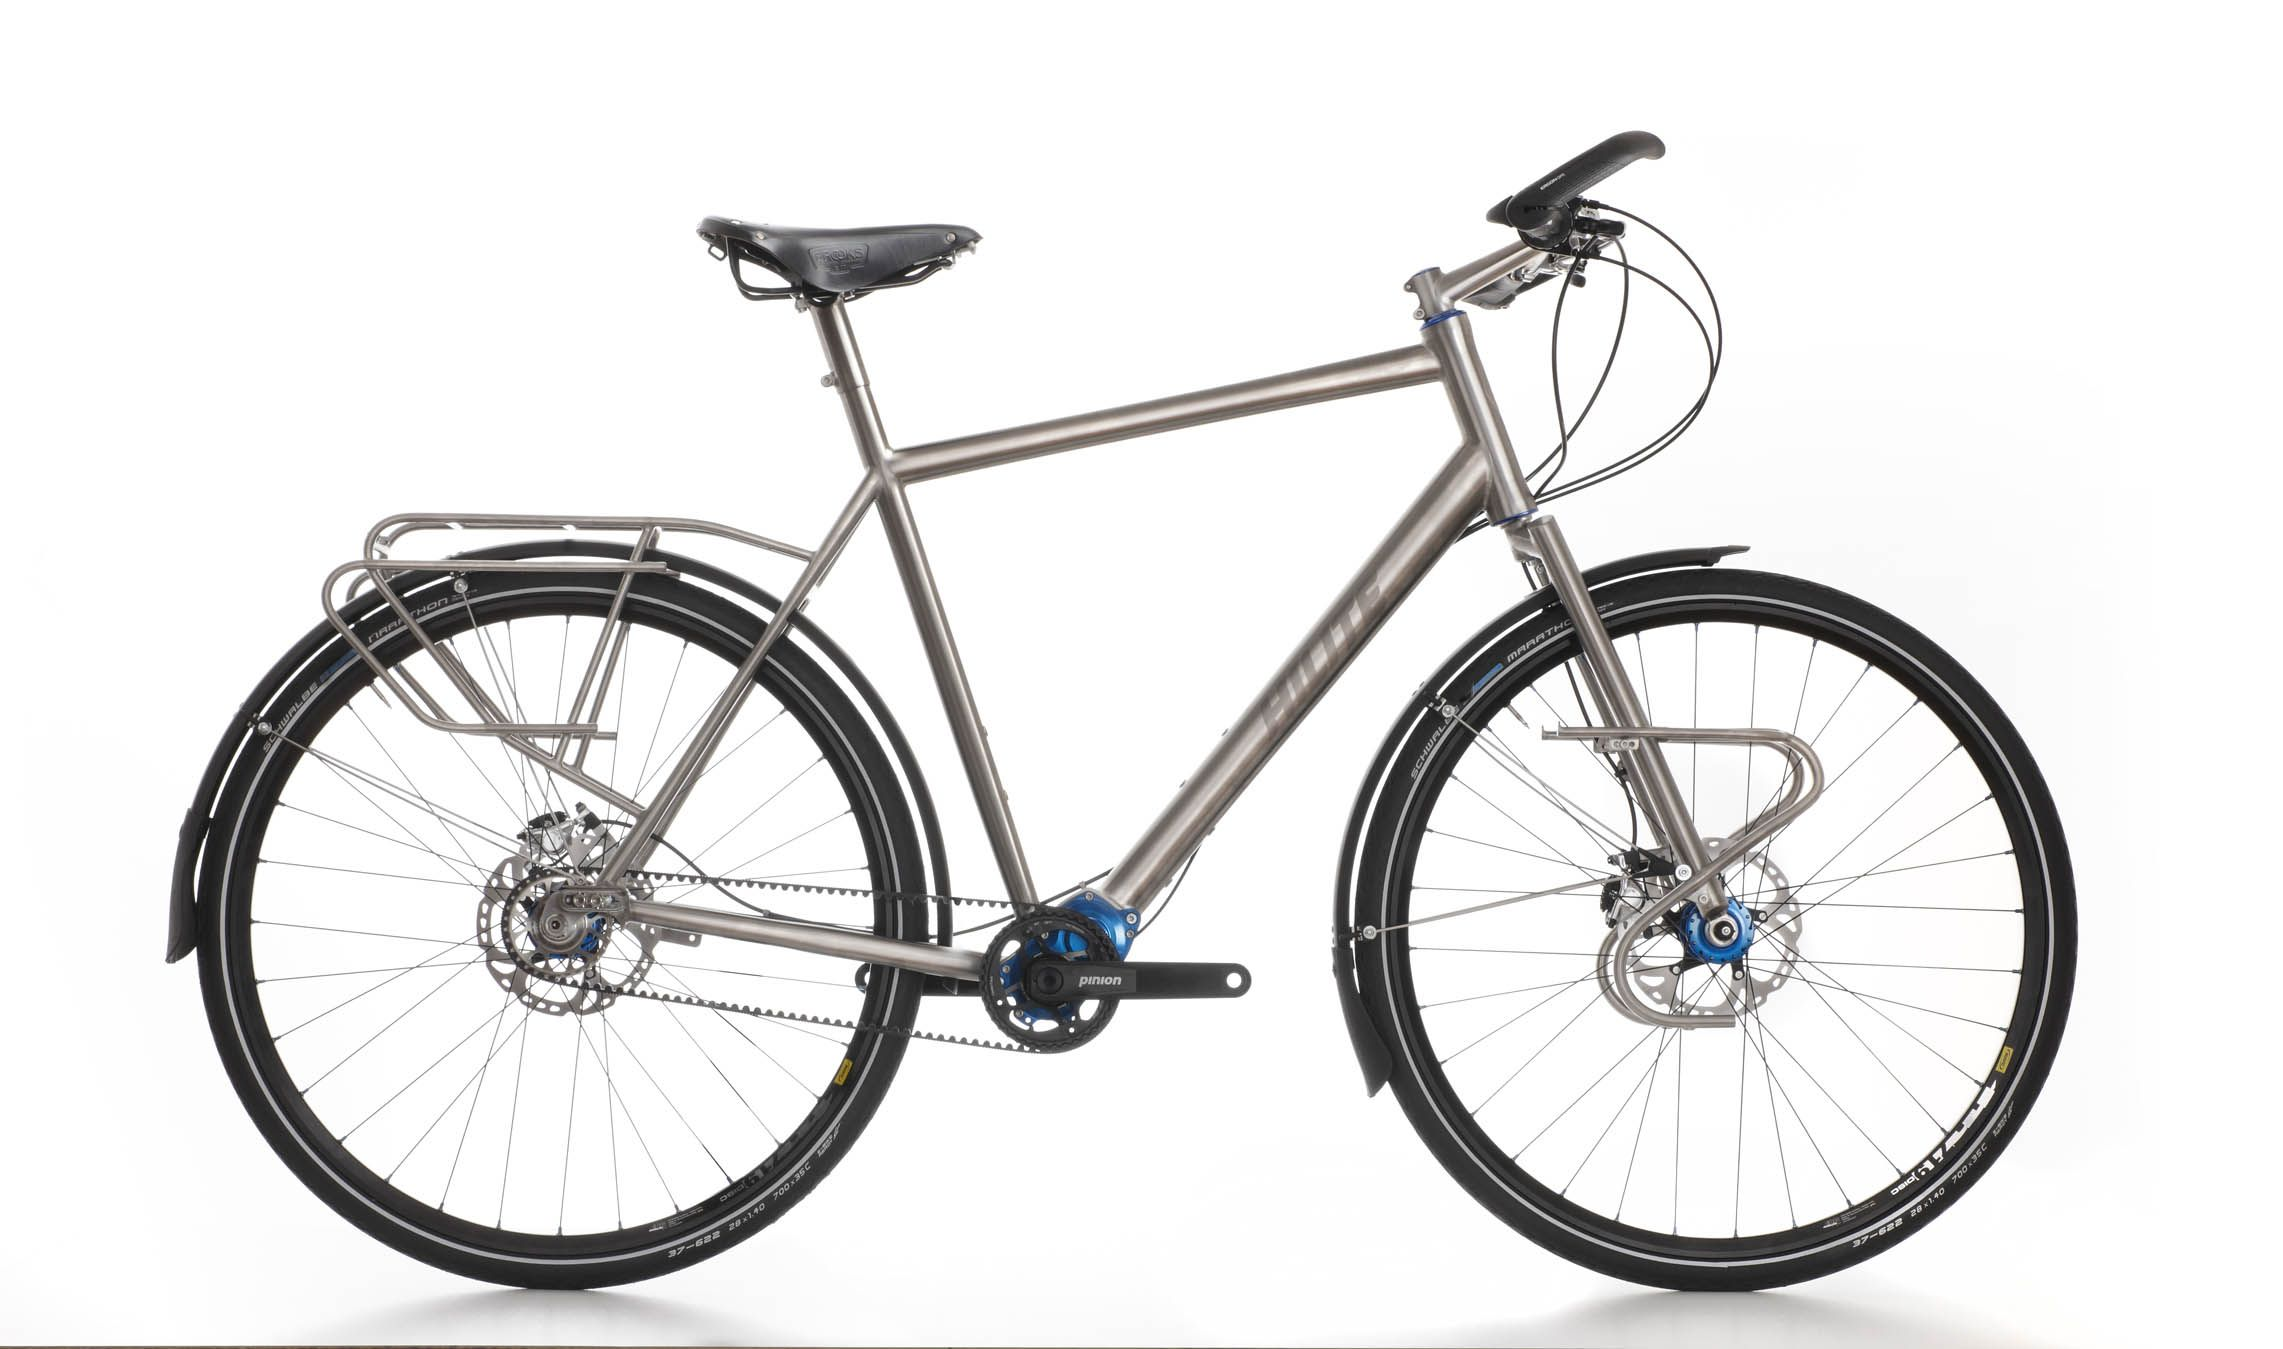 The New Titanium Pinion World Traveller 29er Would Also Be A